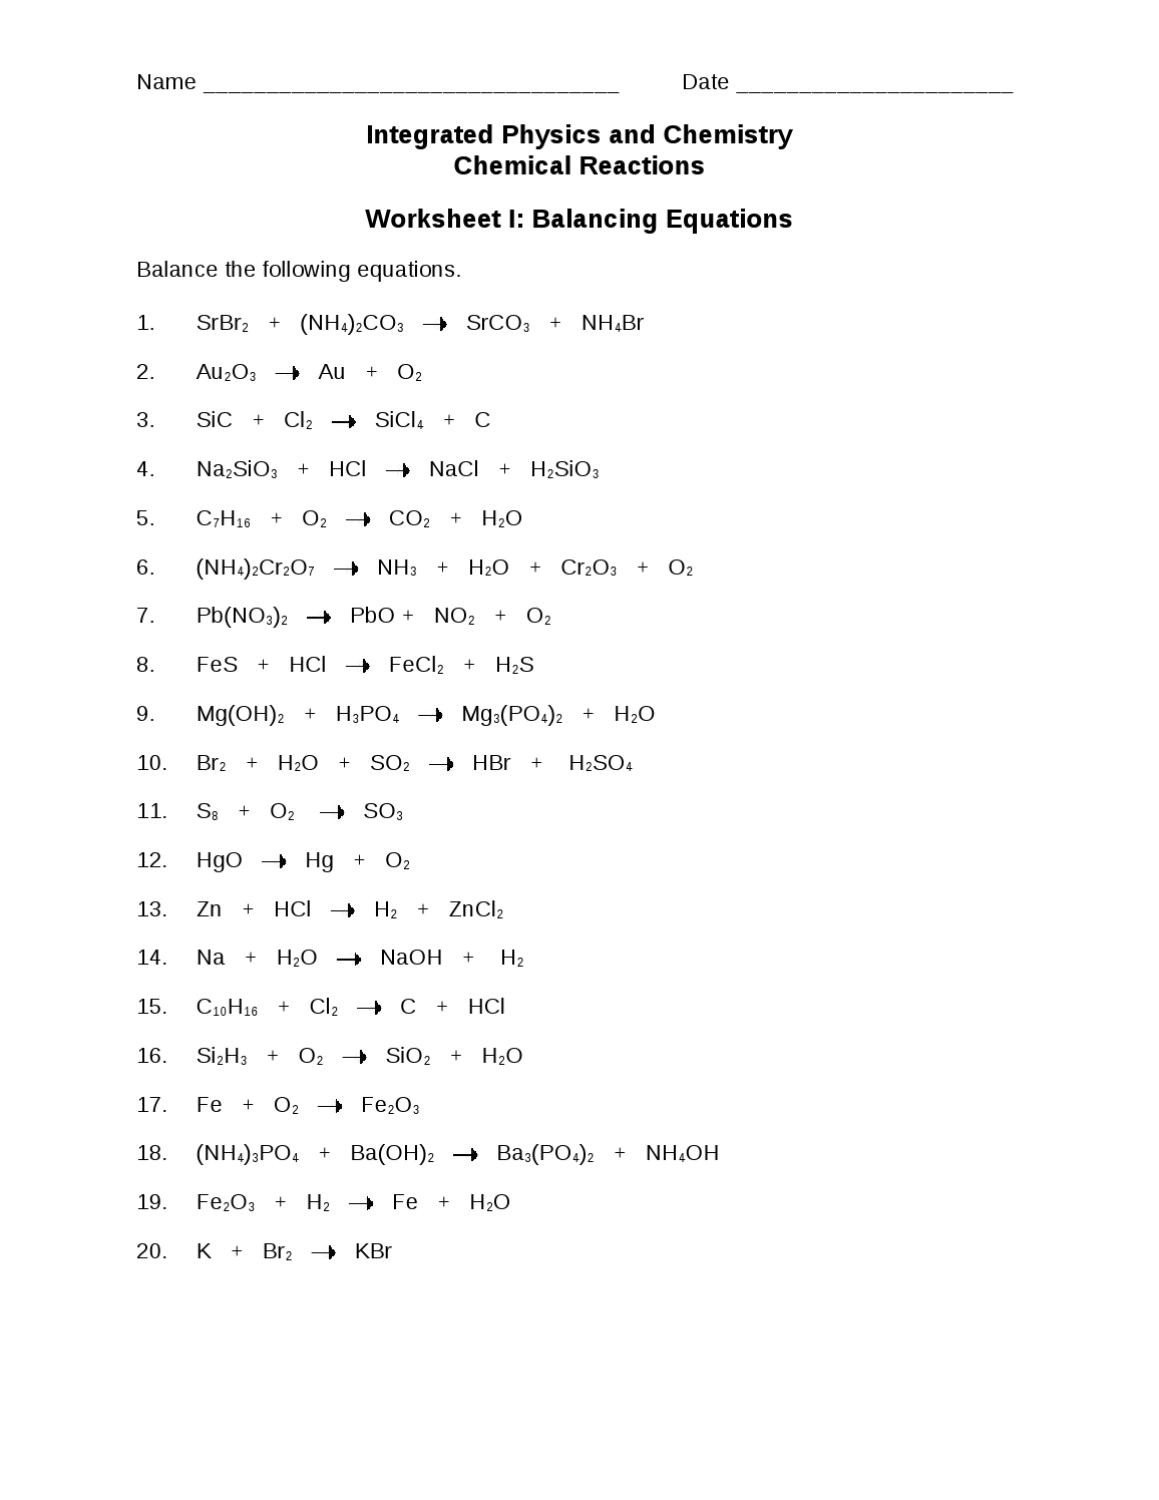 Integrated Physics and Chemistry Worksheets Ws I Balancing Equations1 by Hc Munications issuu